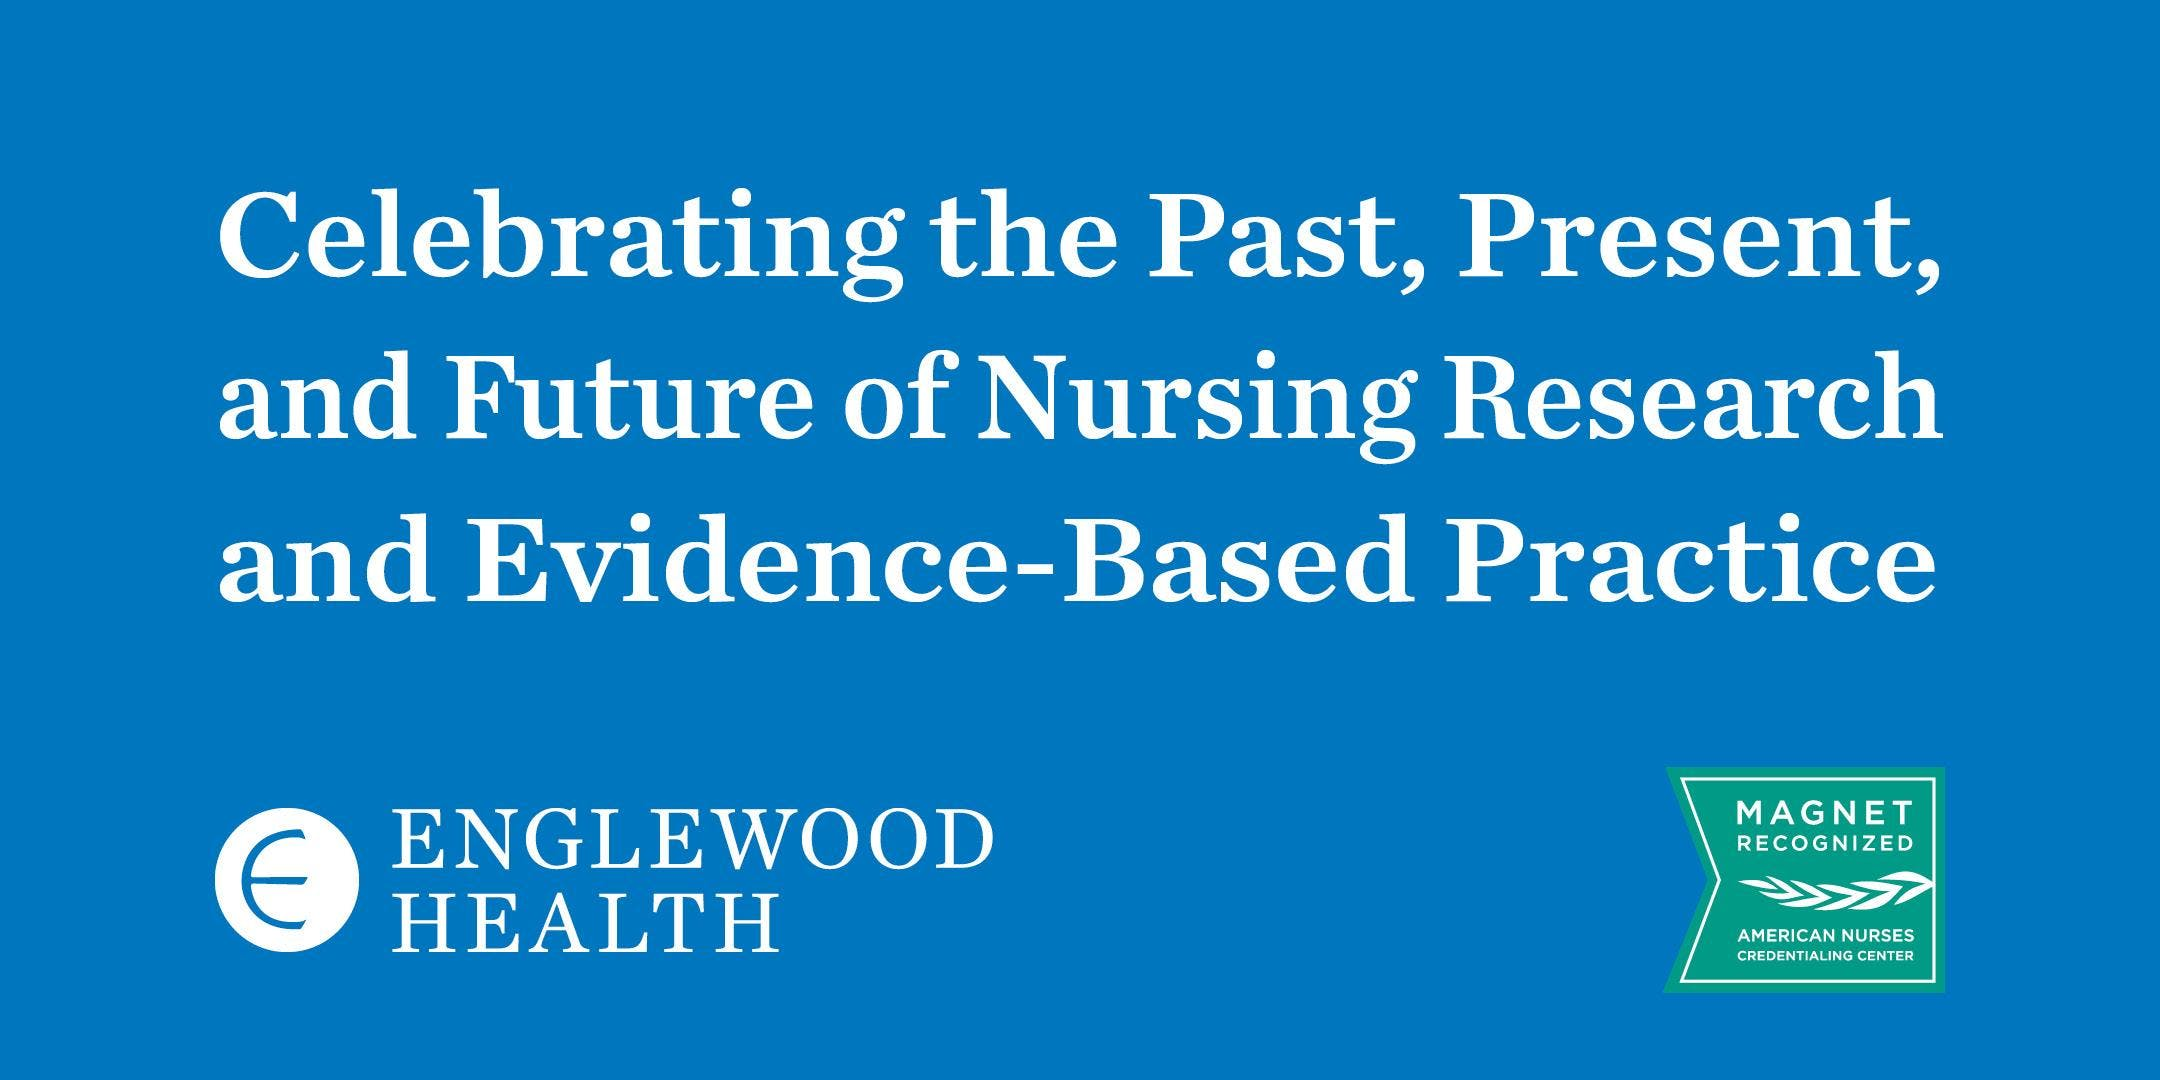 More info: Celebrating the Past, Present, and Future of Nursing Research and Evidence-Based Practice